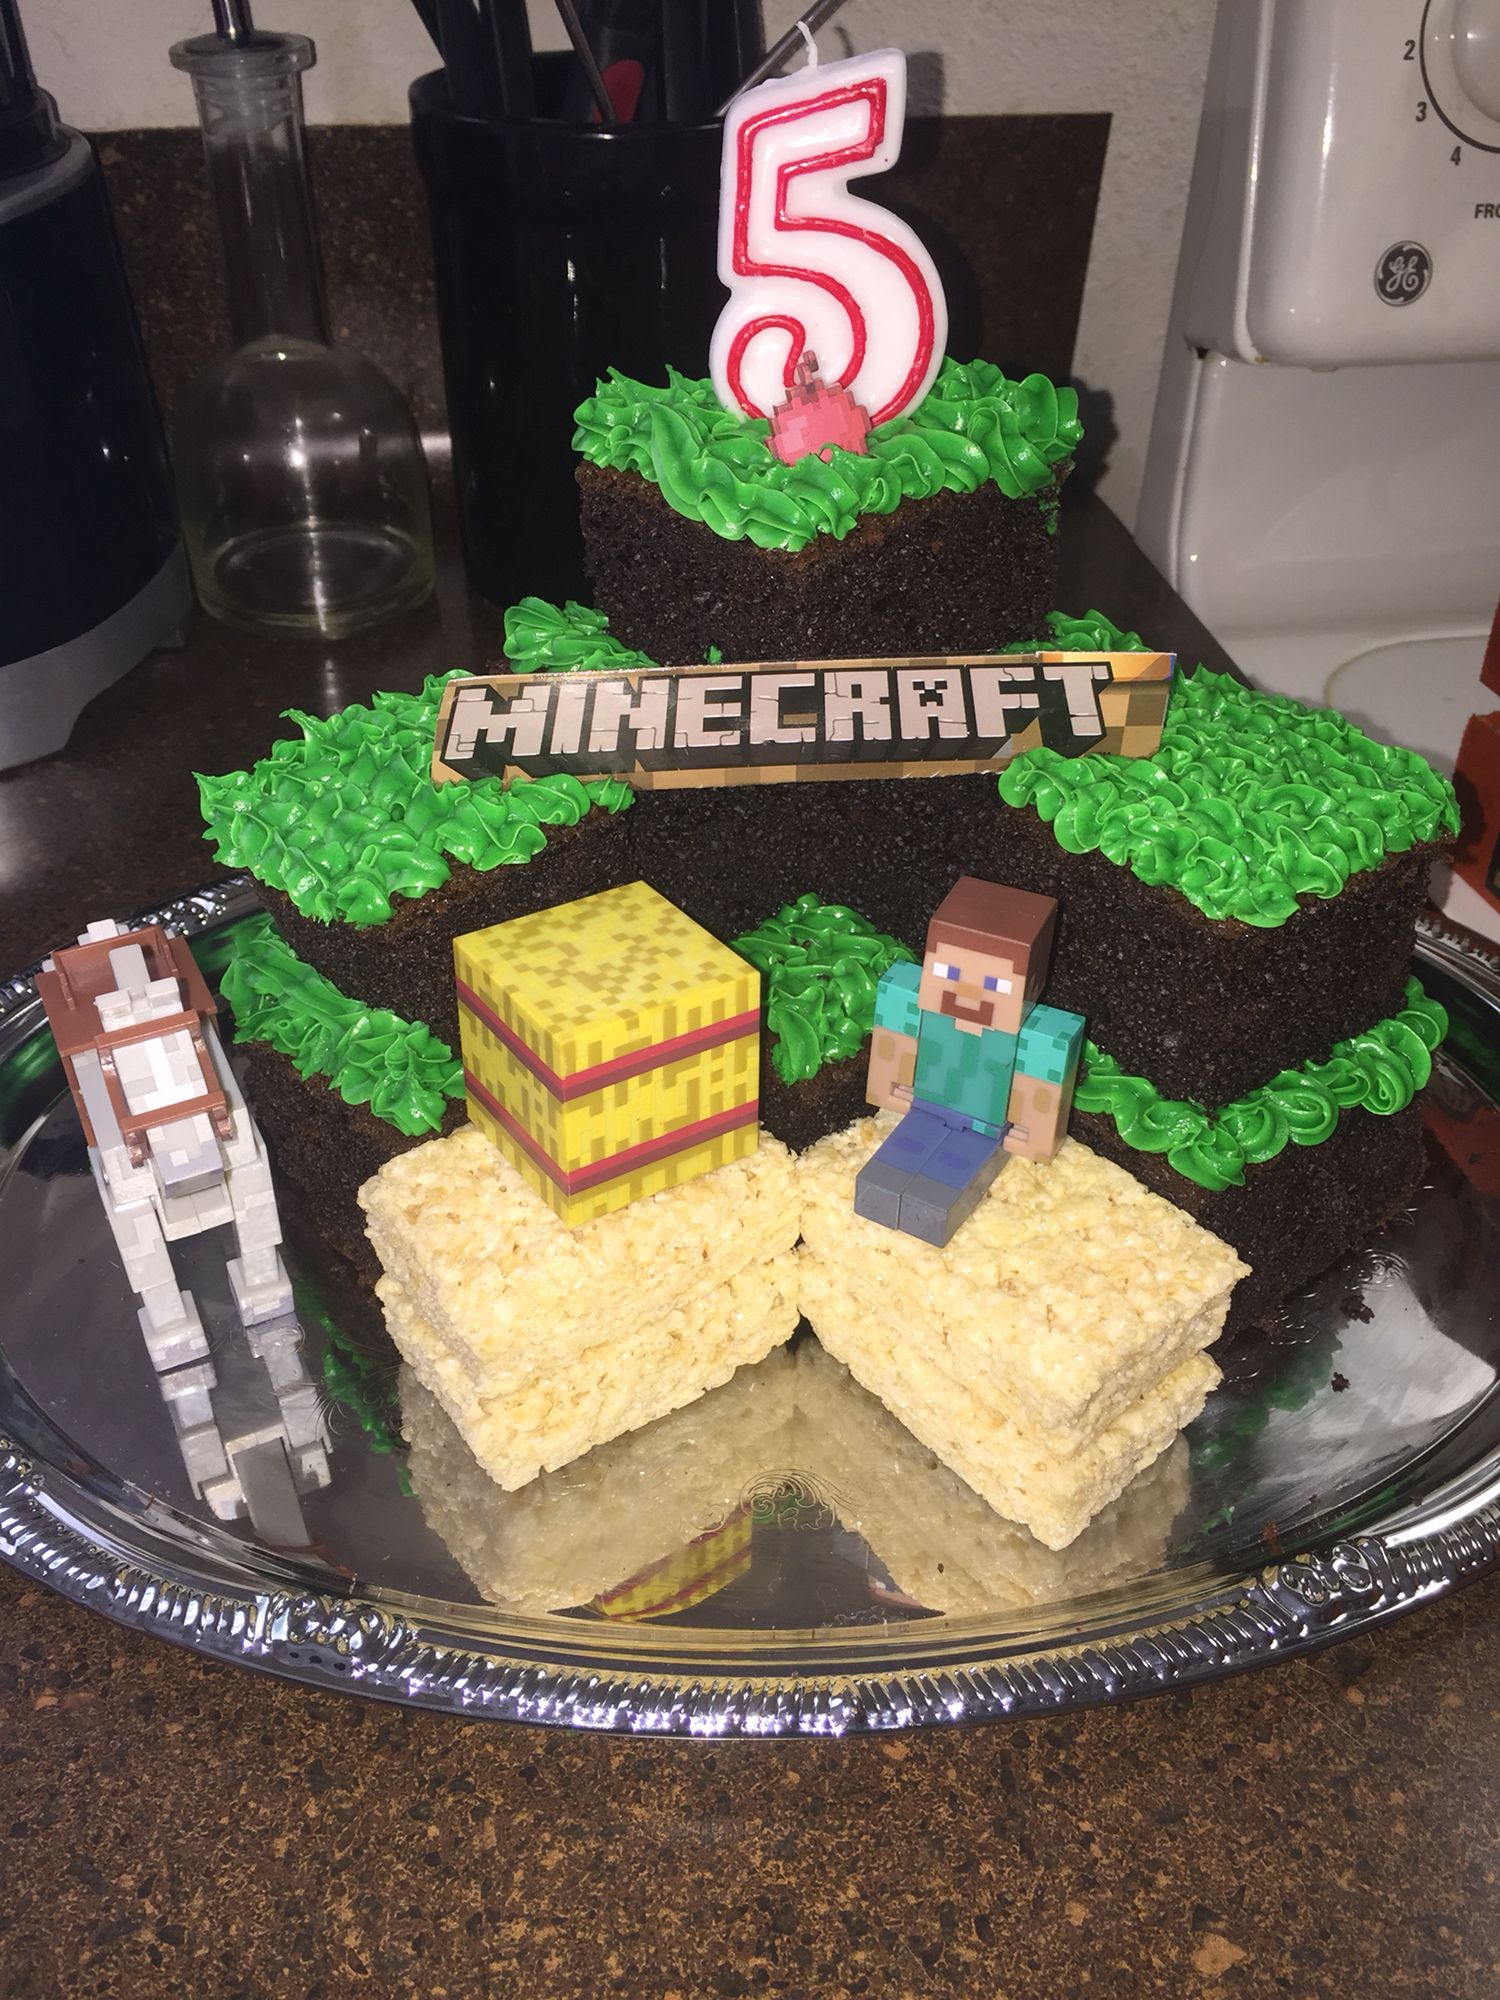 Diy Minecraft Cake 3 Easy Ingredients 2 Chocolate Cake Box 2